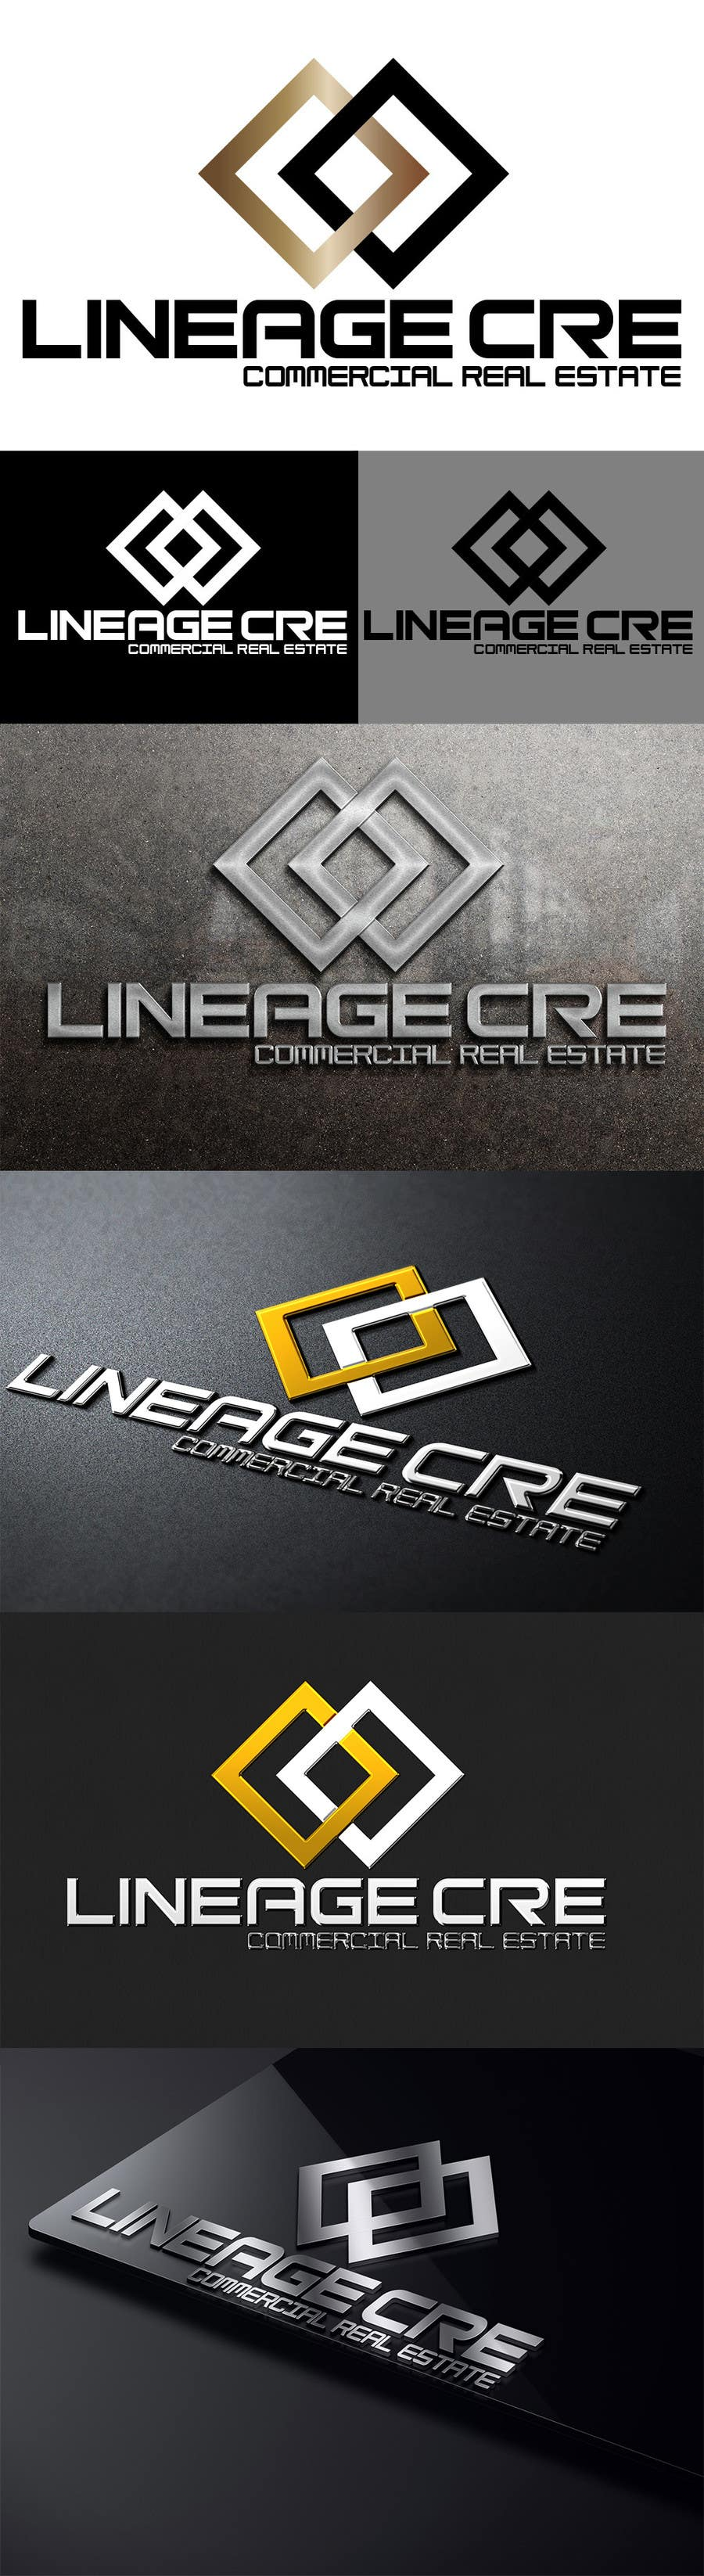 #10 for Design a Logo for Lineage CRE by rogeriolmarcos